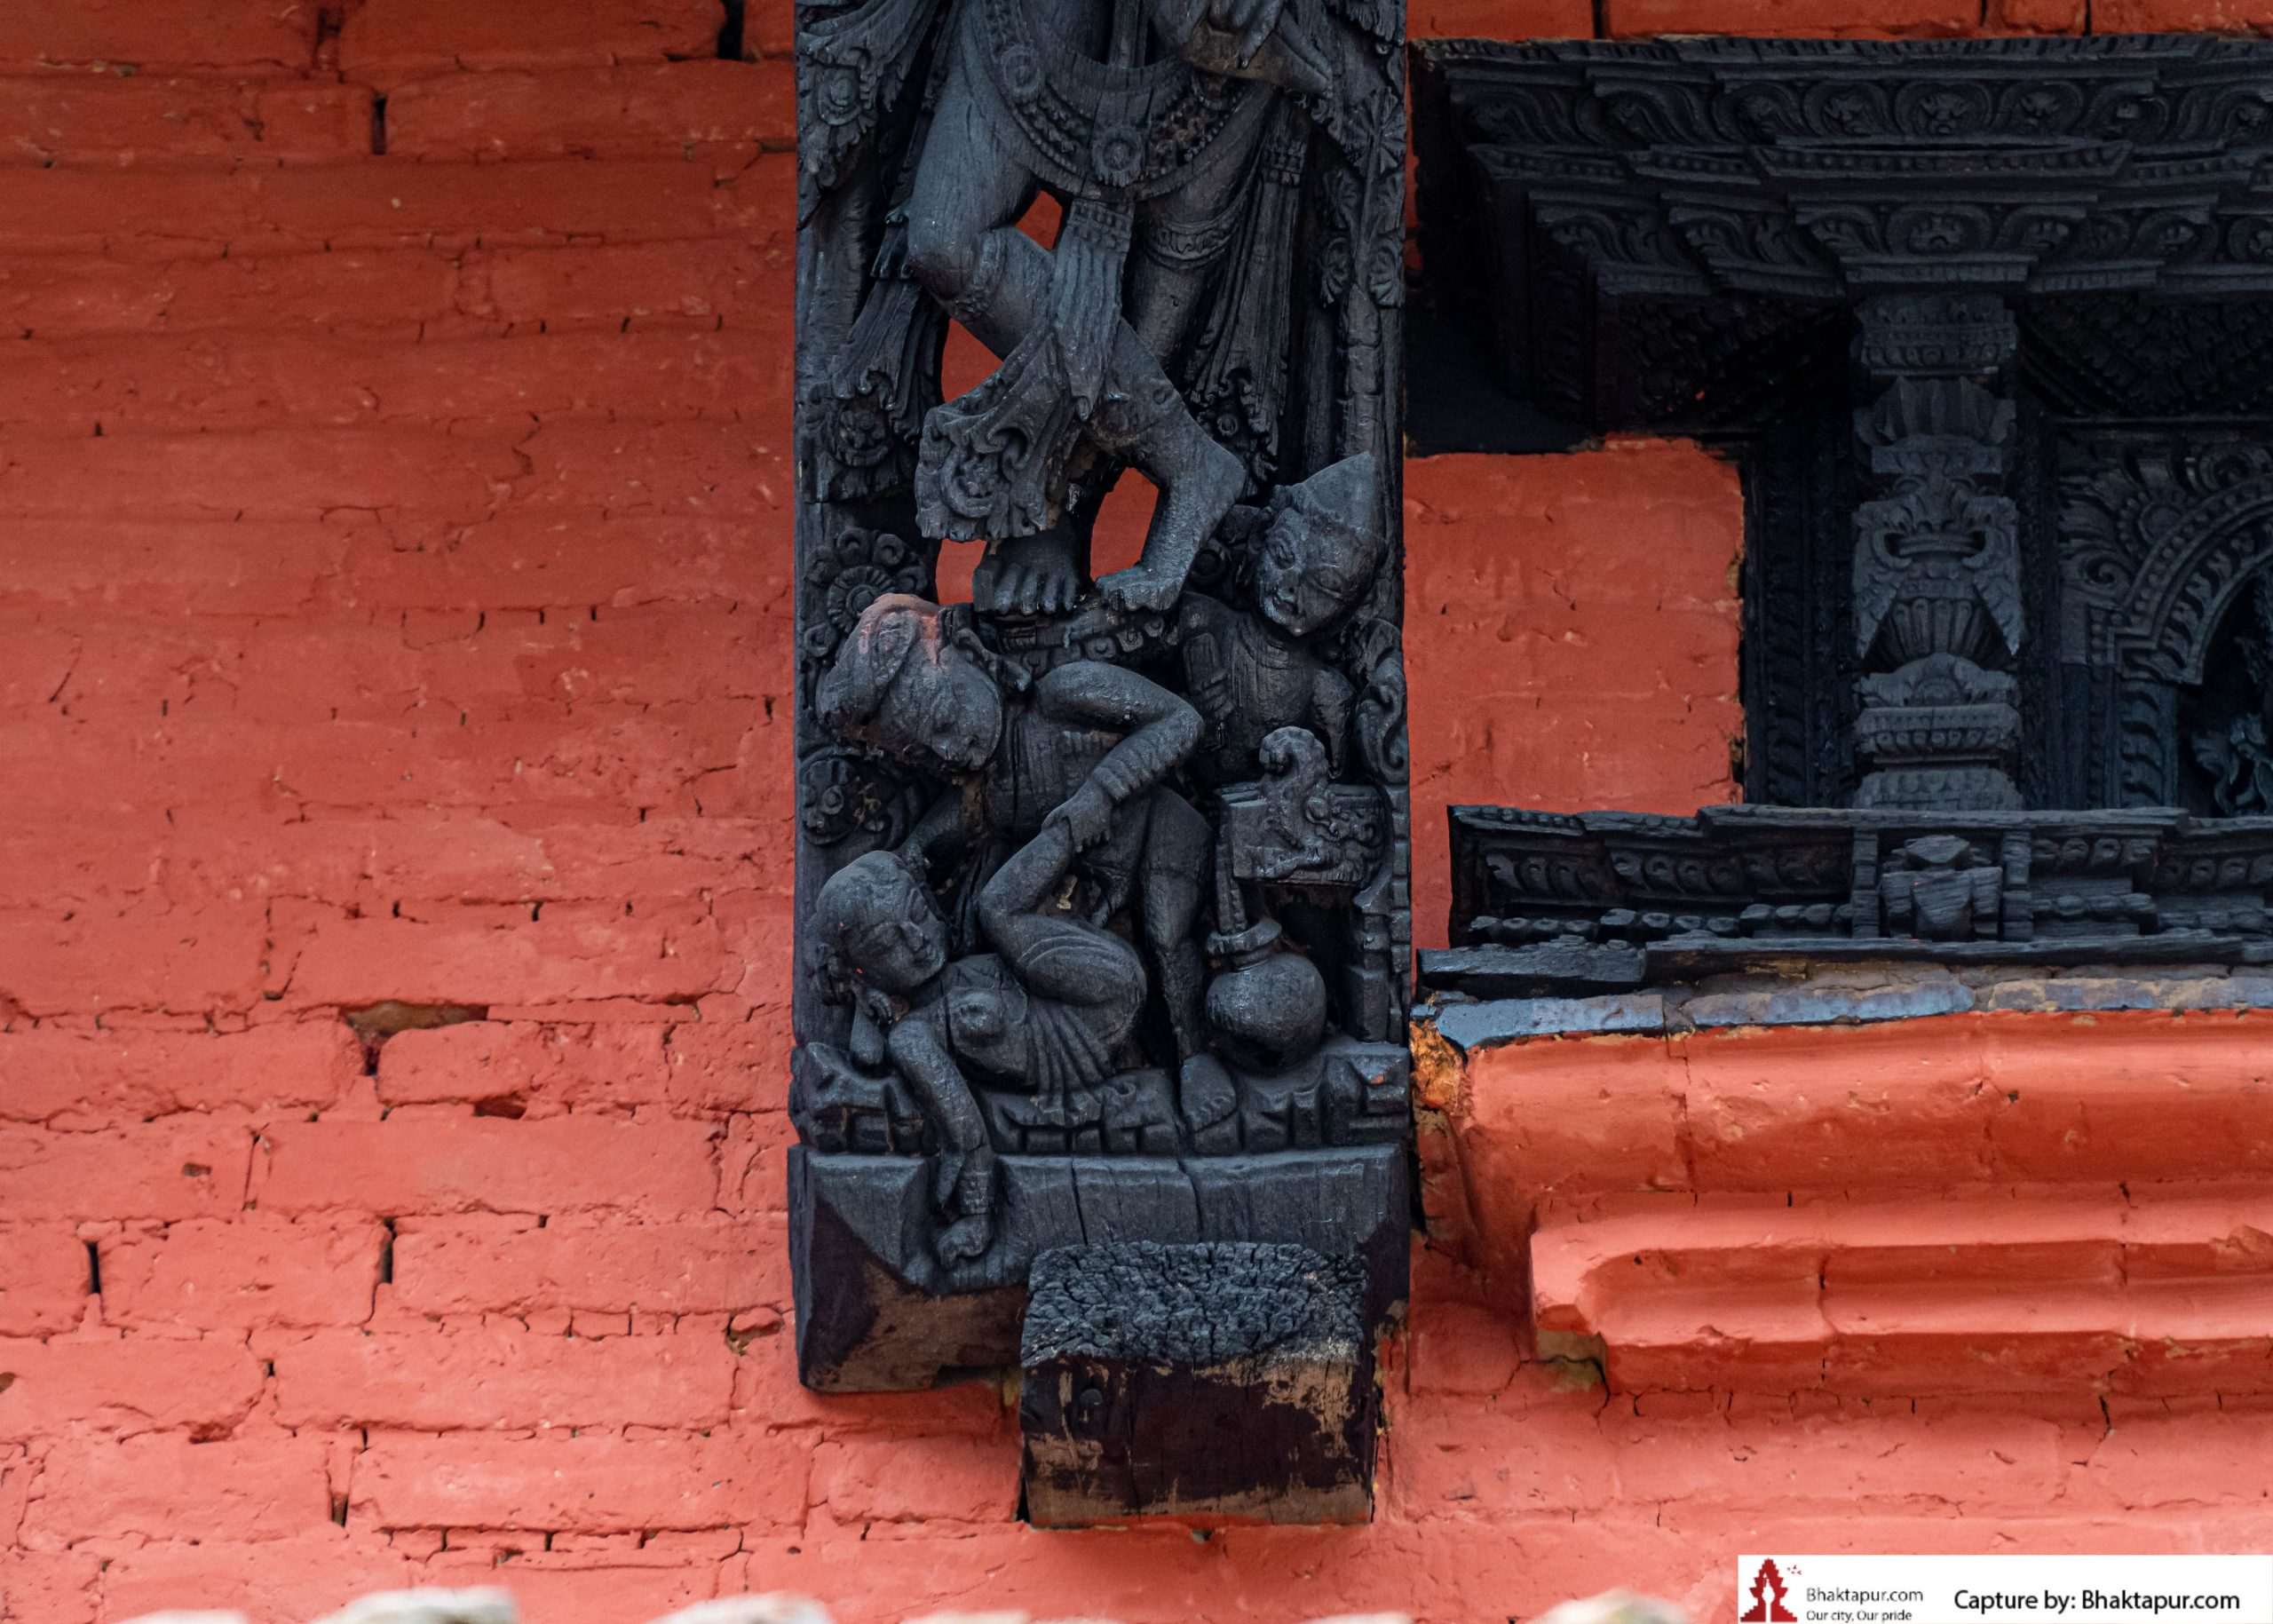 https://www.bhaktapur.com/wp-content/uploads/2021/08/erotic-carving-79-of-137-scaled.jpg